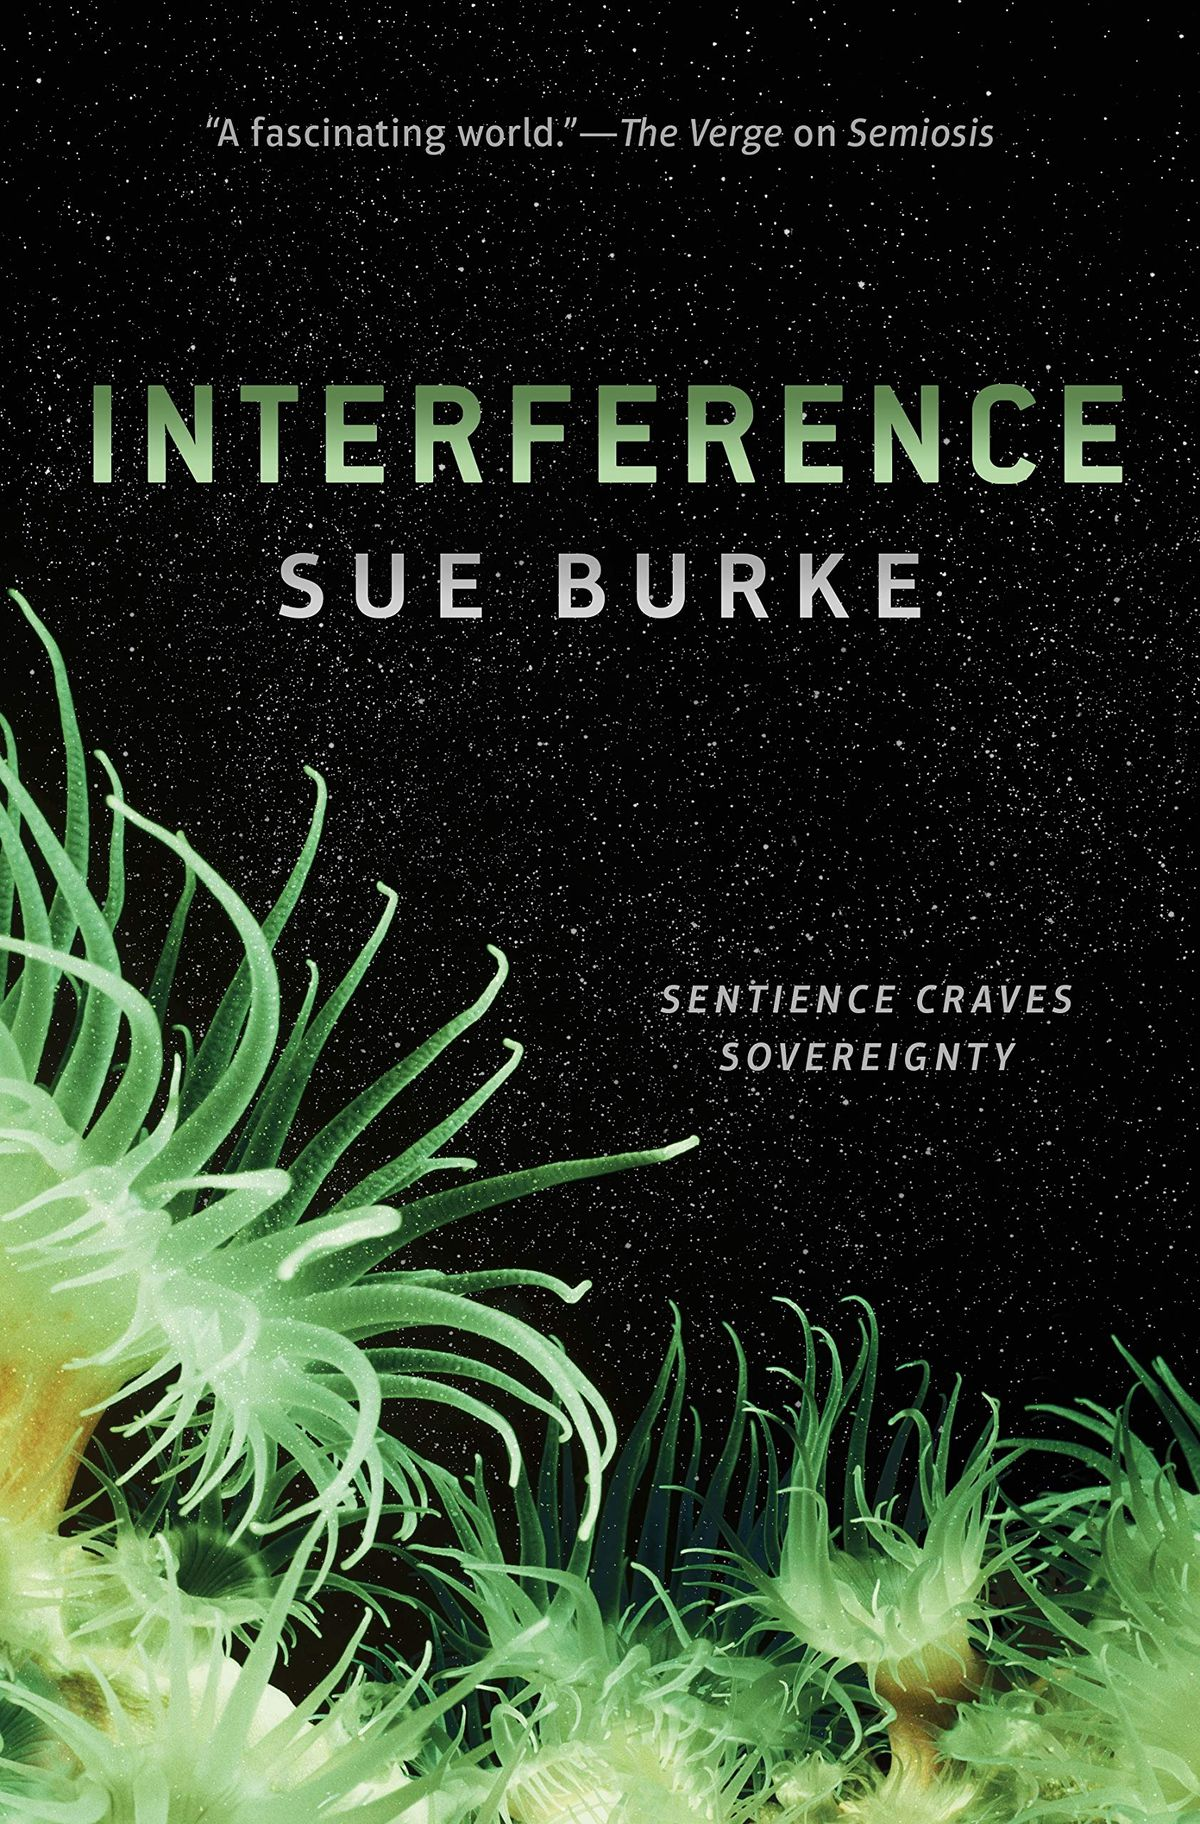 cover for interference; a black, starry sky, below are green plants